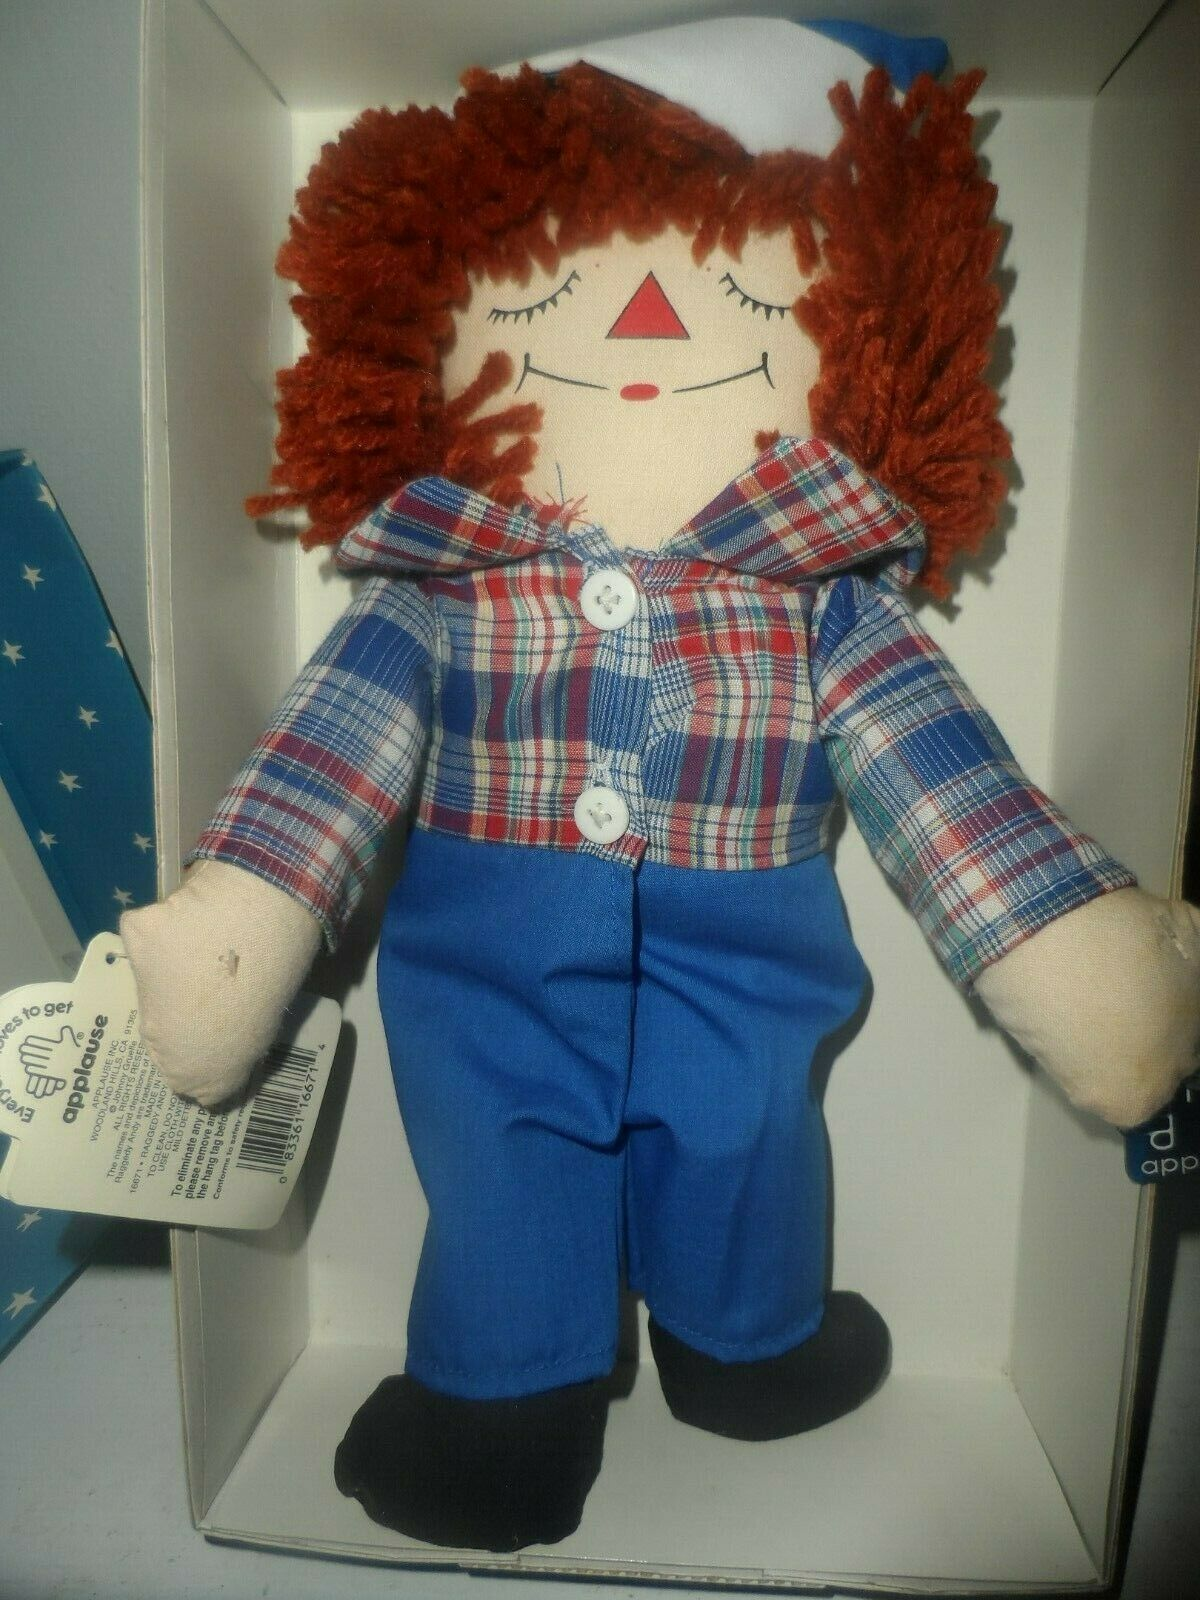 LIMITED EDITION Raggedy Andy Awake/Asleep Doll by Applause image 7